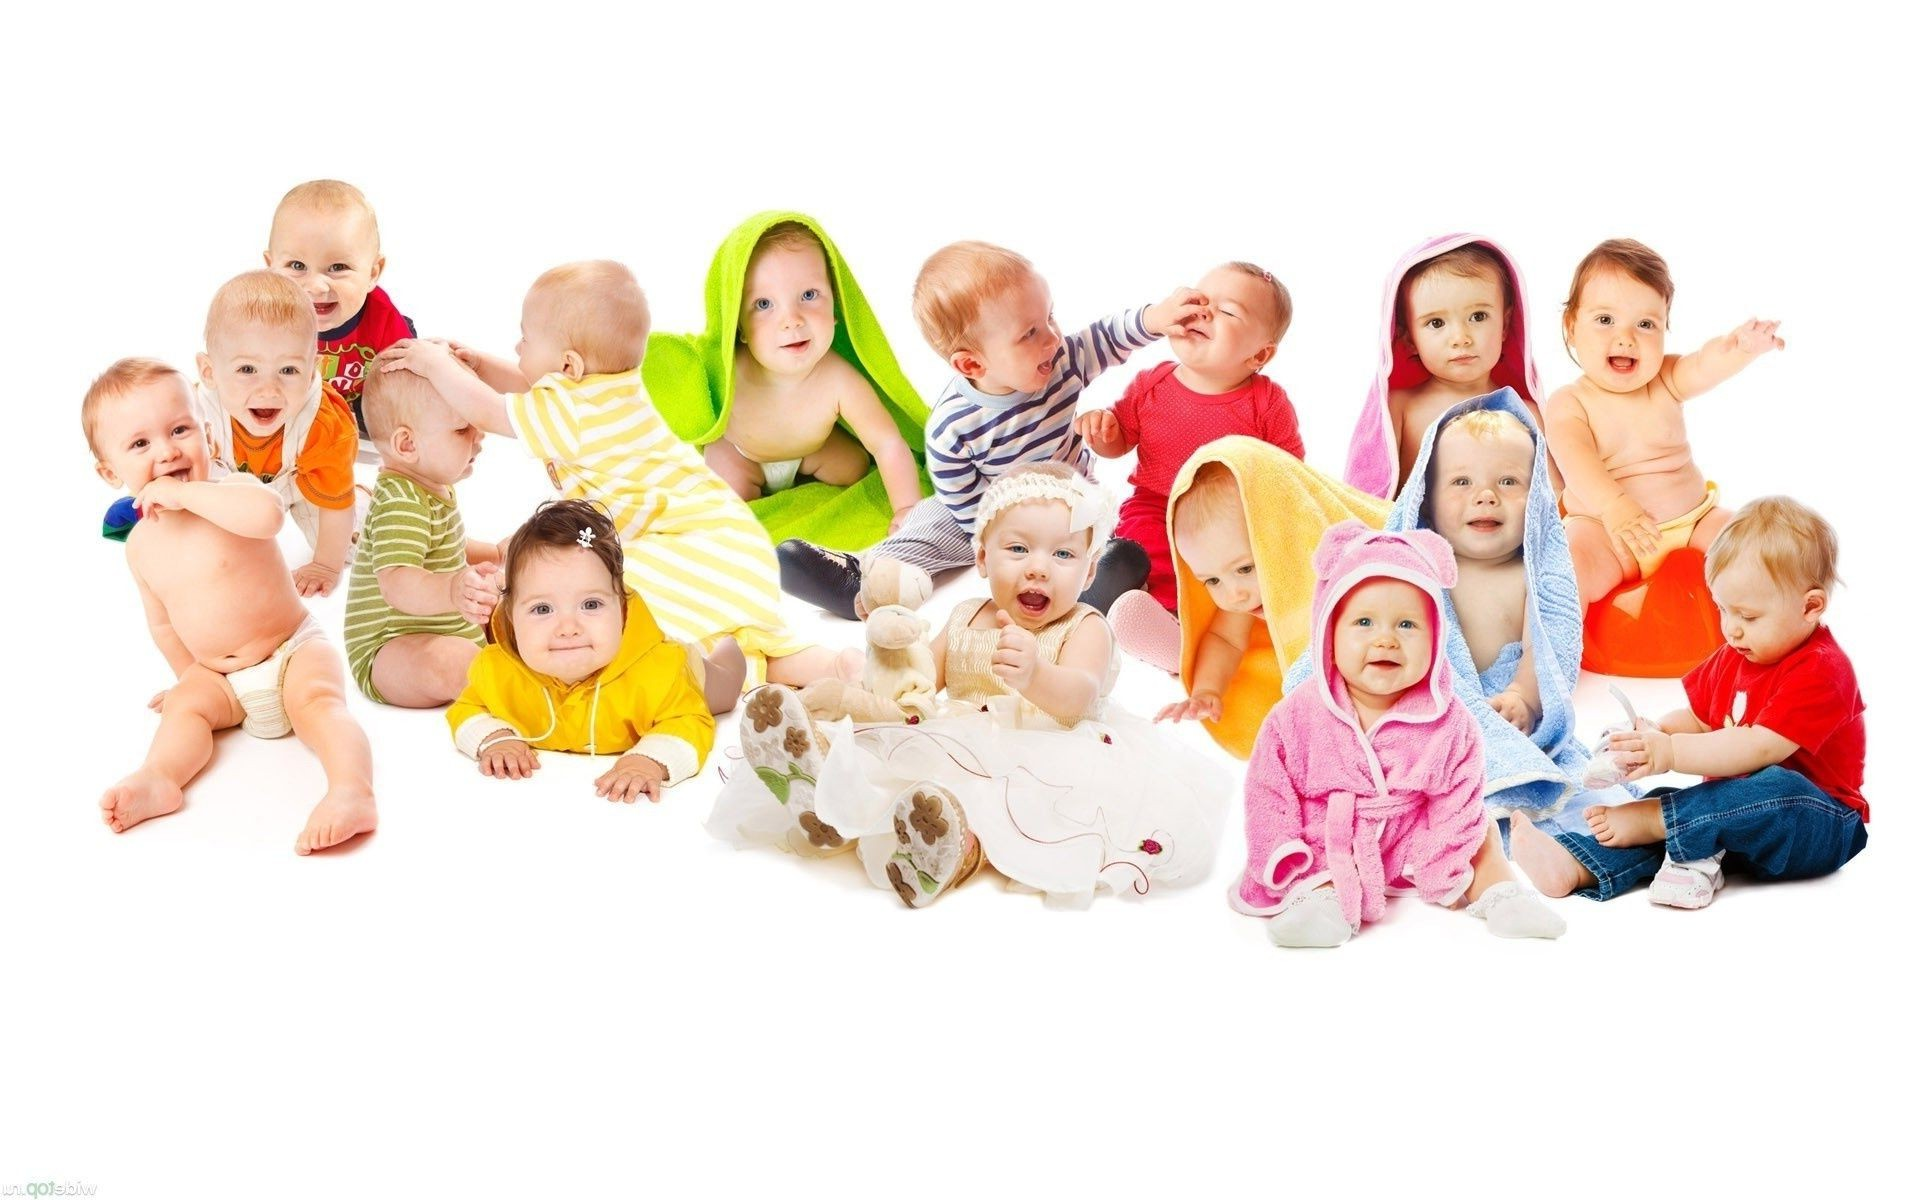 babies child little boy fun cute baby play kindergarten happiness toy joy group family girl preschool laughing friendship toddler elementary